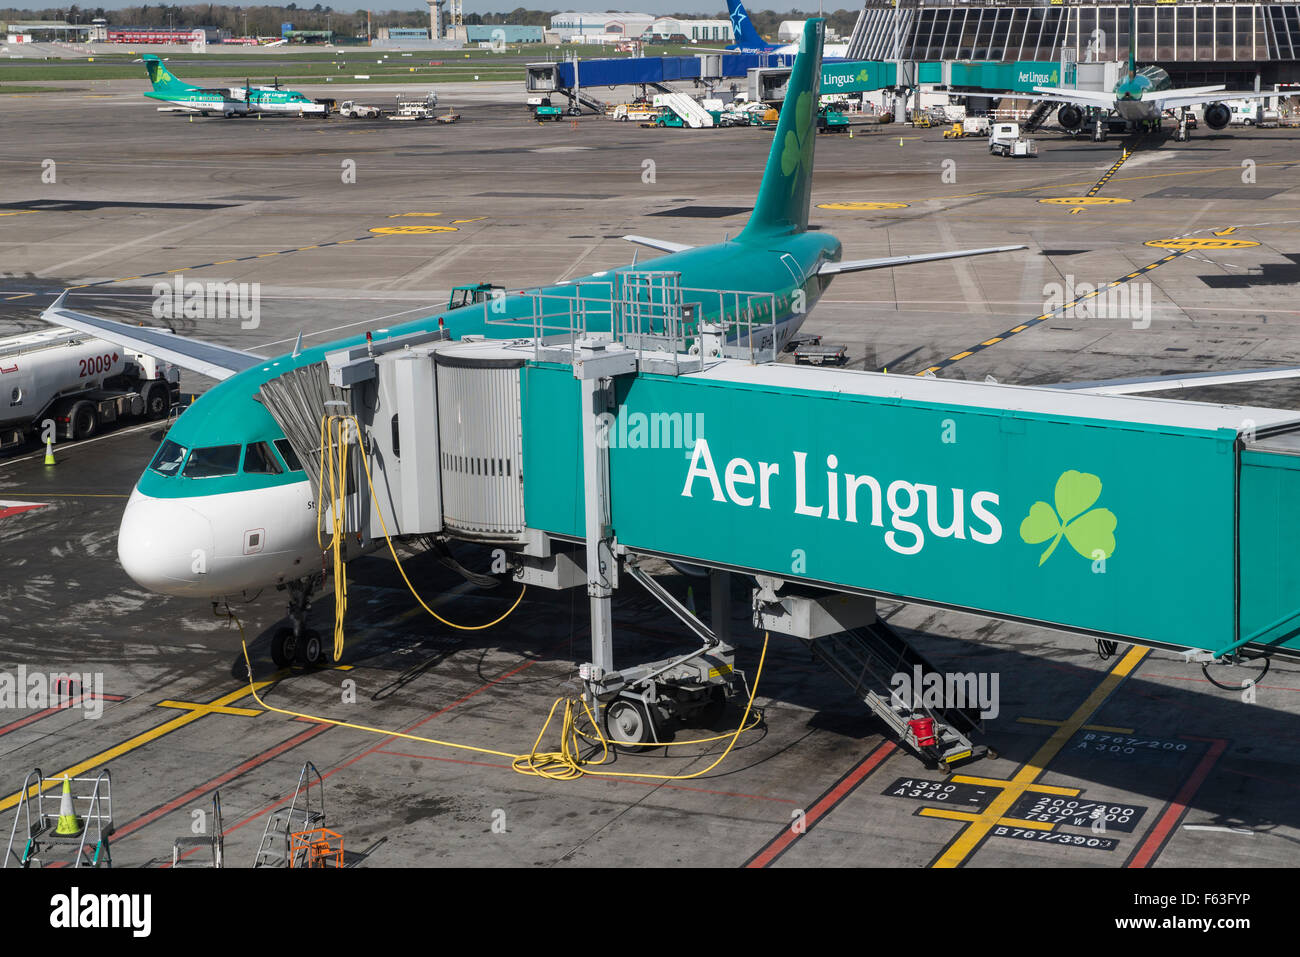 Aer Lingus Airbus A320-214 with registration EI-DEN at Dublin airport - Stock Image